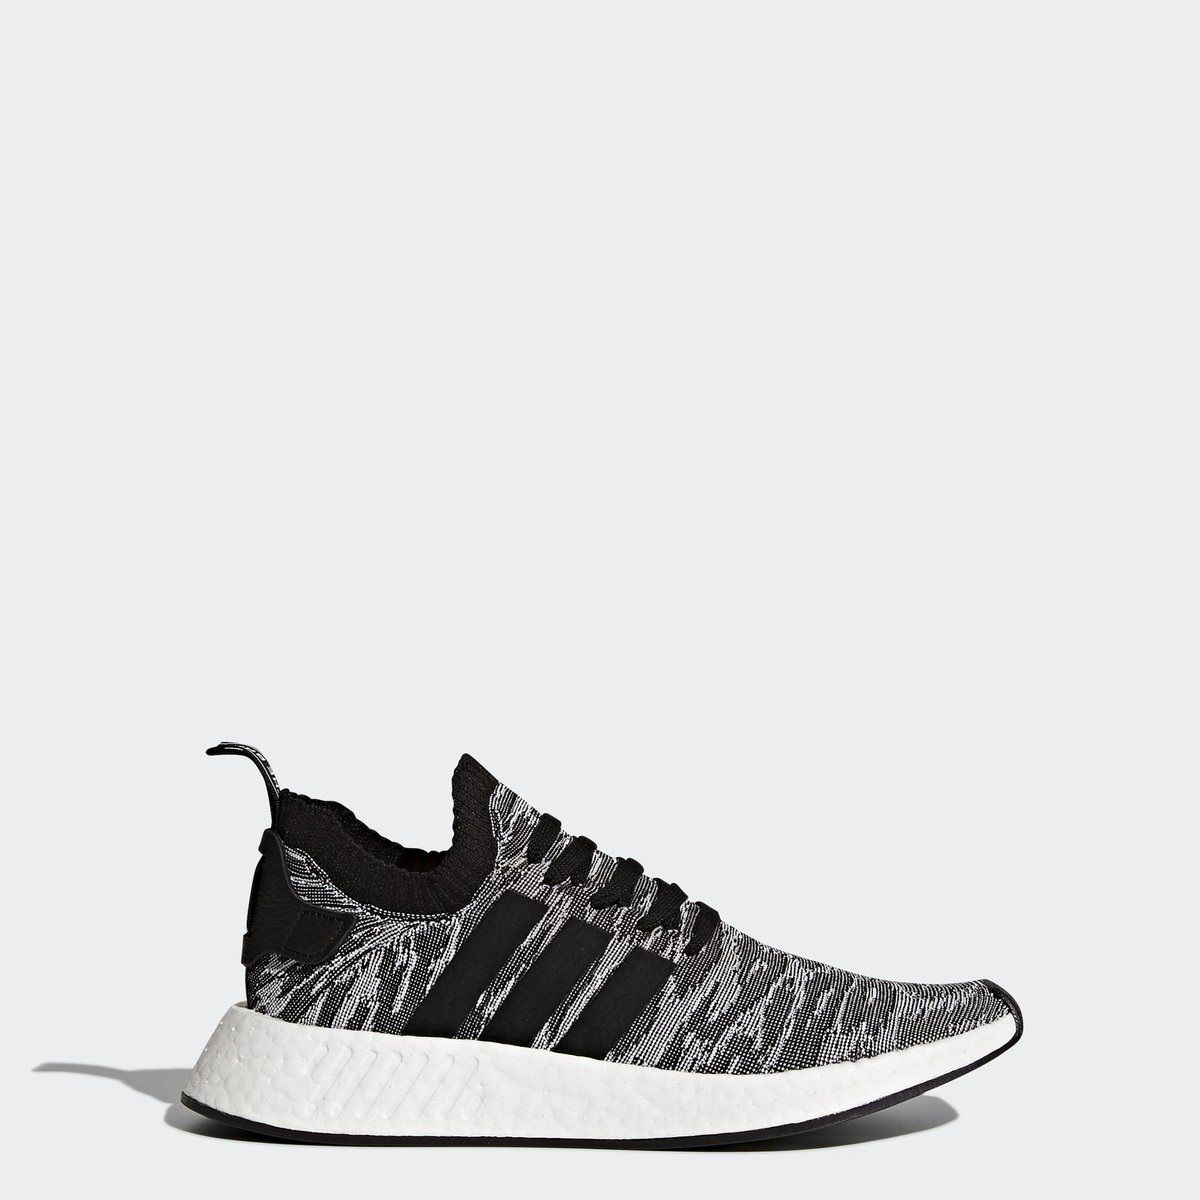 adidas running shoes black and white adidas uk yeezy time